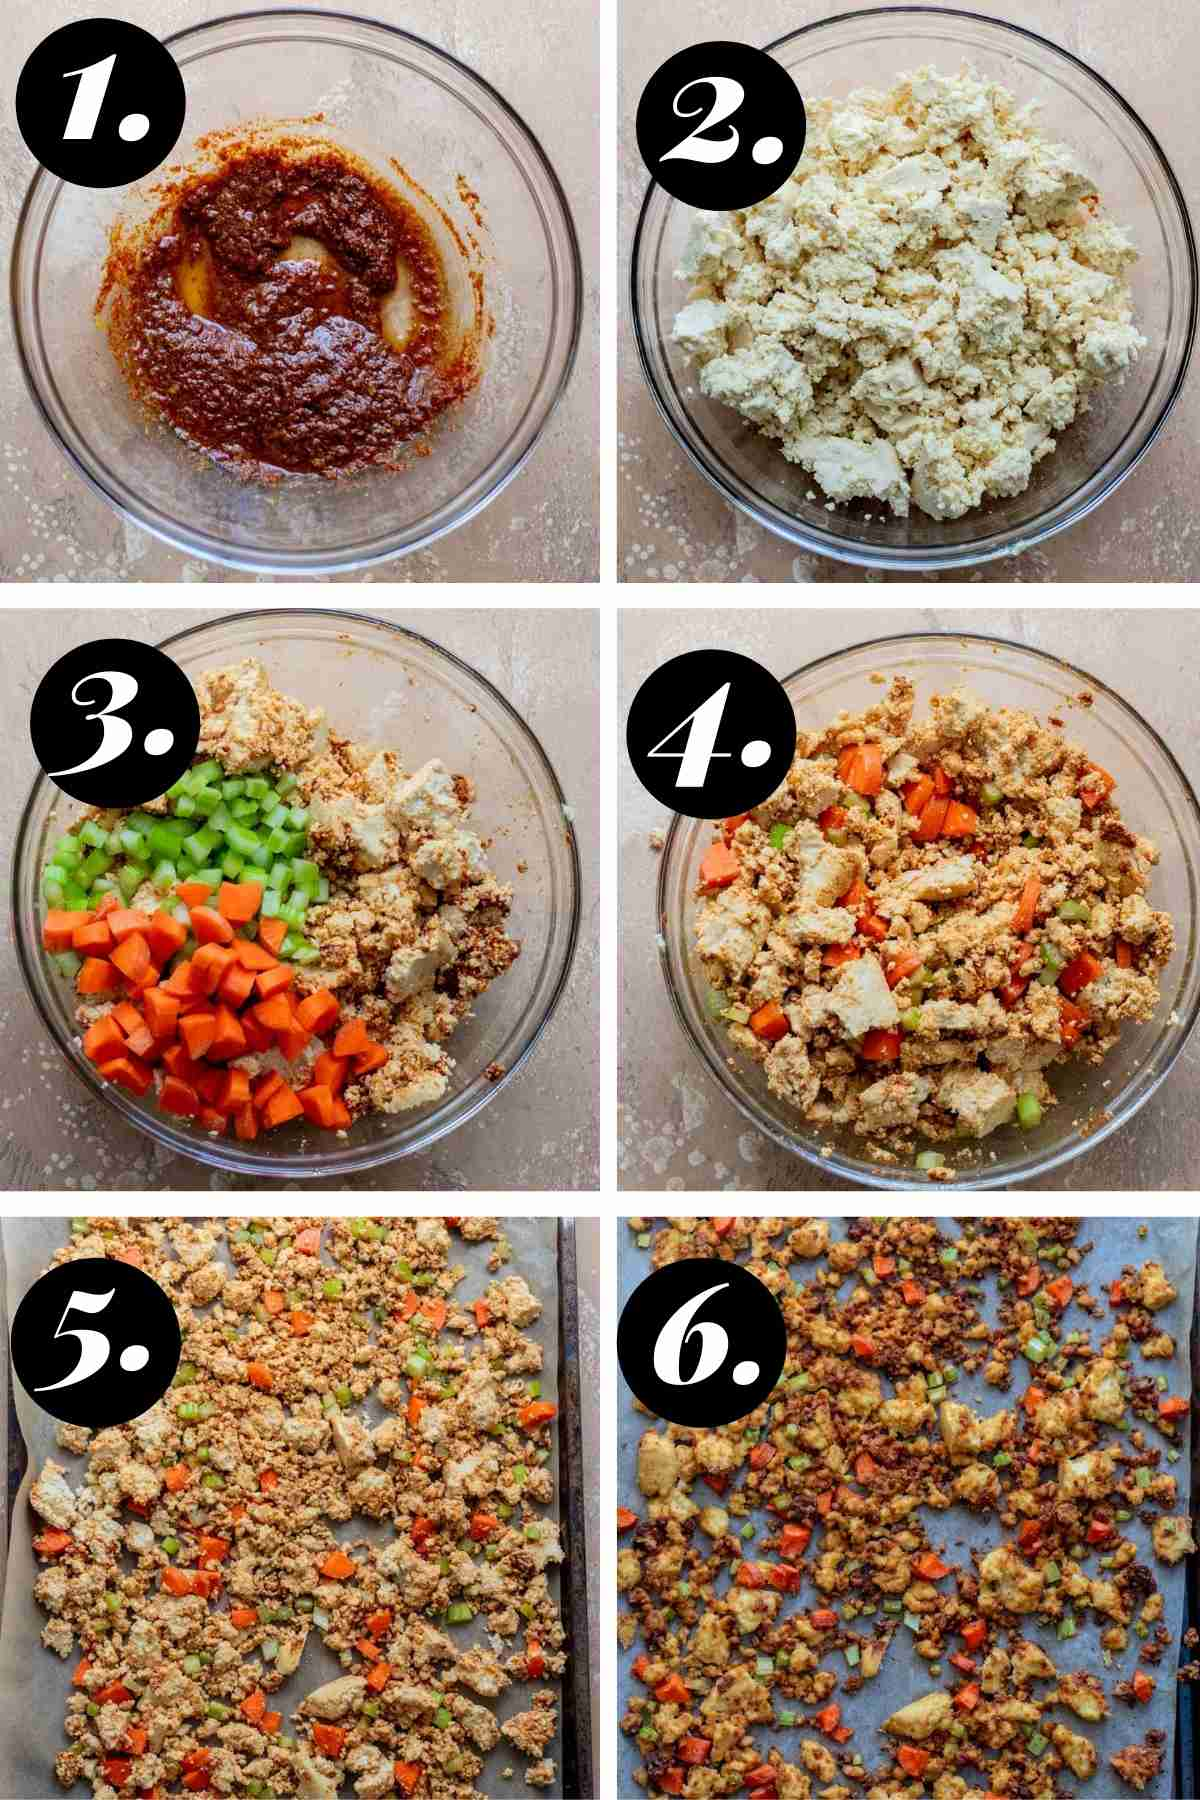 Step by step photos showing how to prepare the tofu to bake.